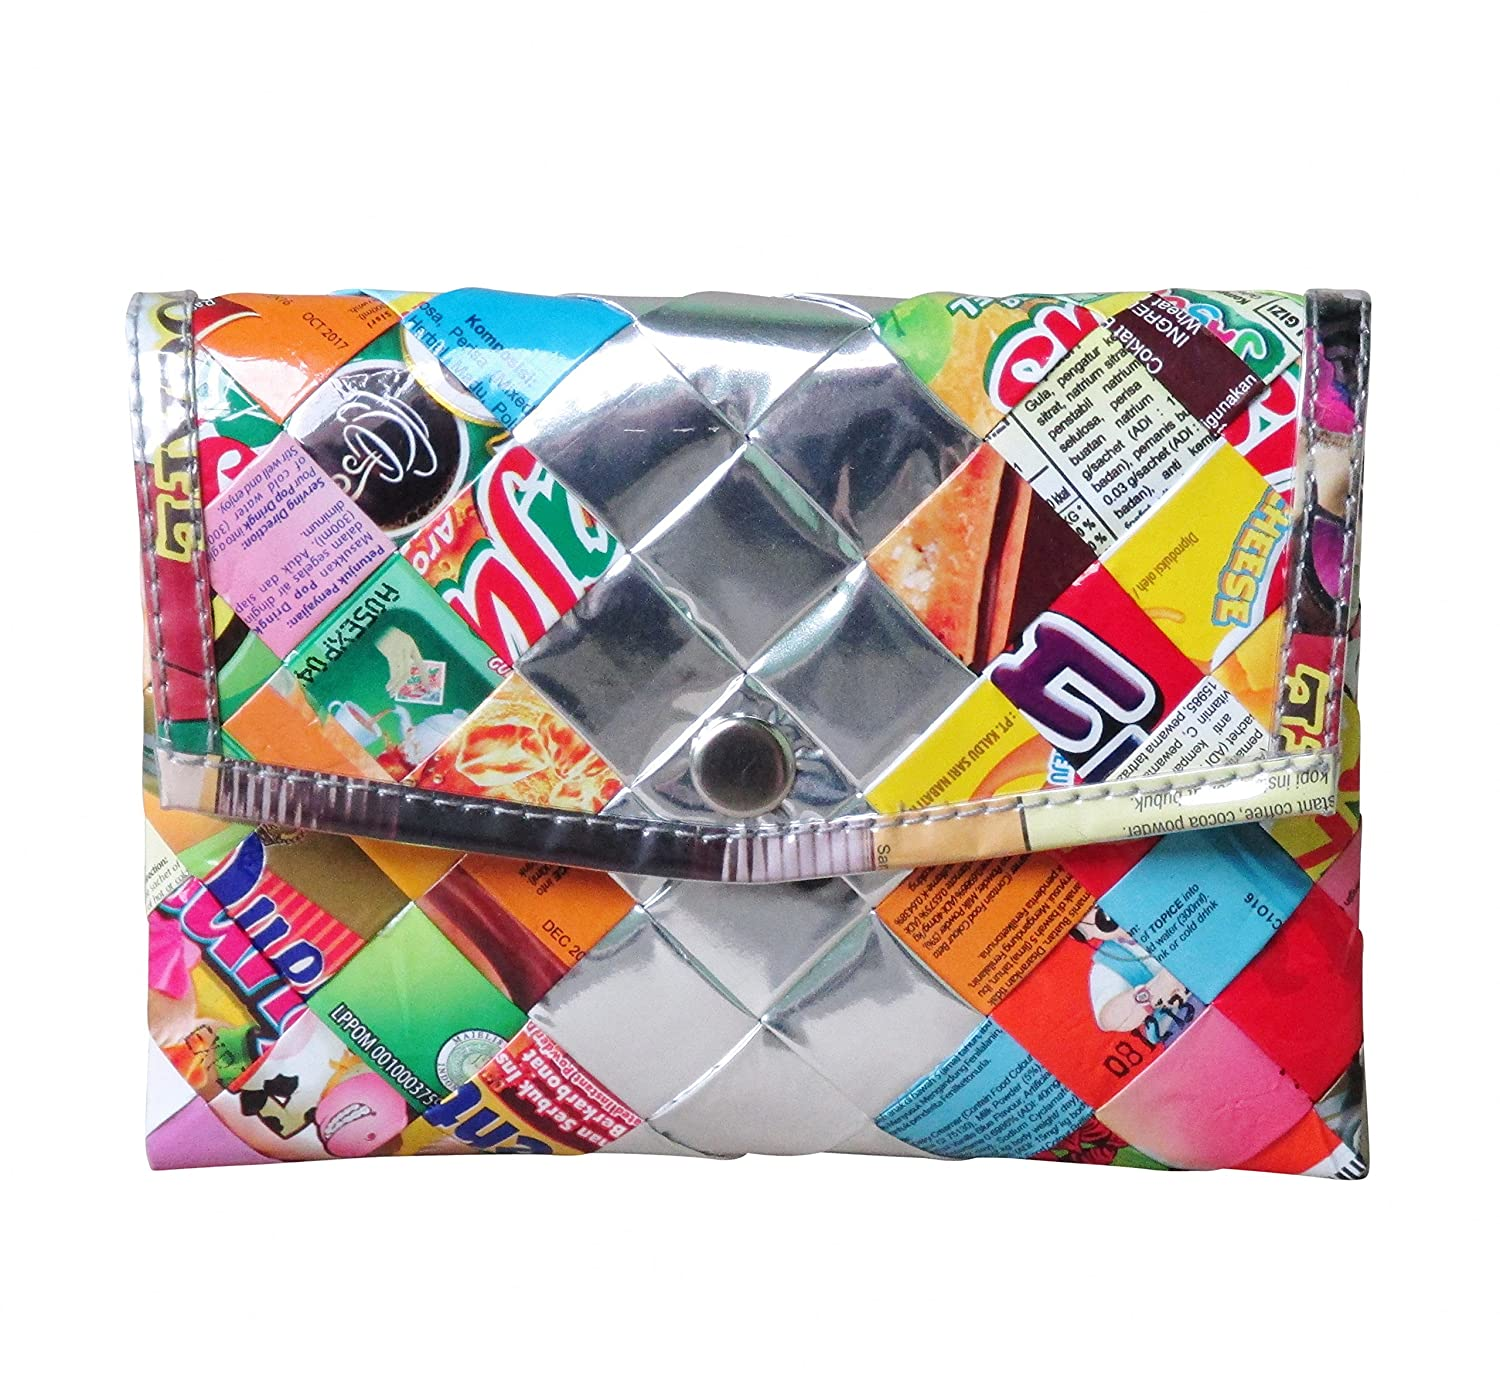 Amazon.com: Snap coin purse made of candy wrappers - FREE ...